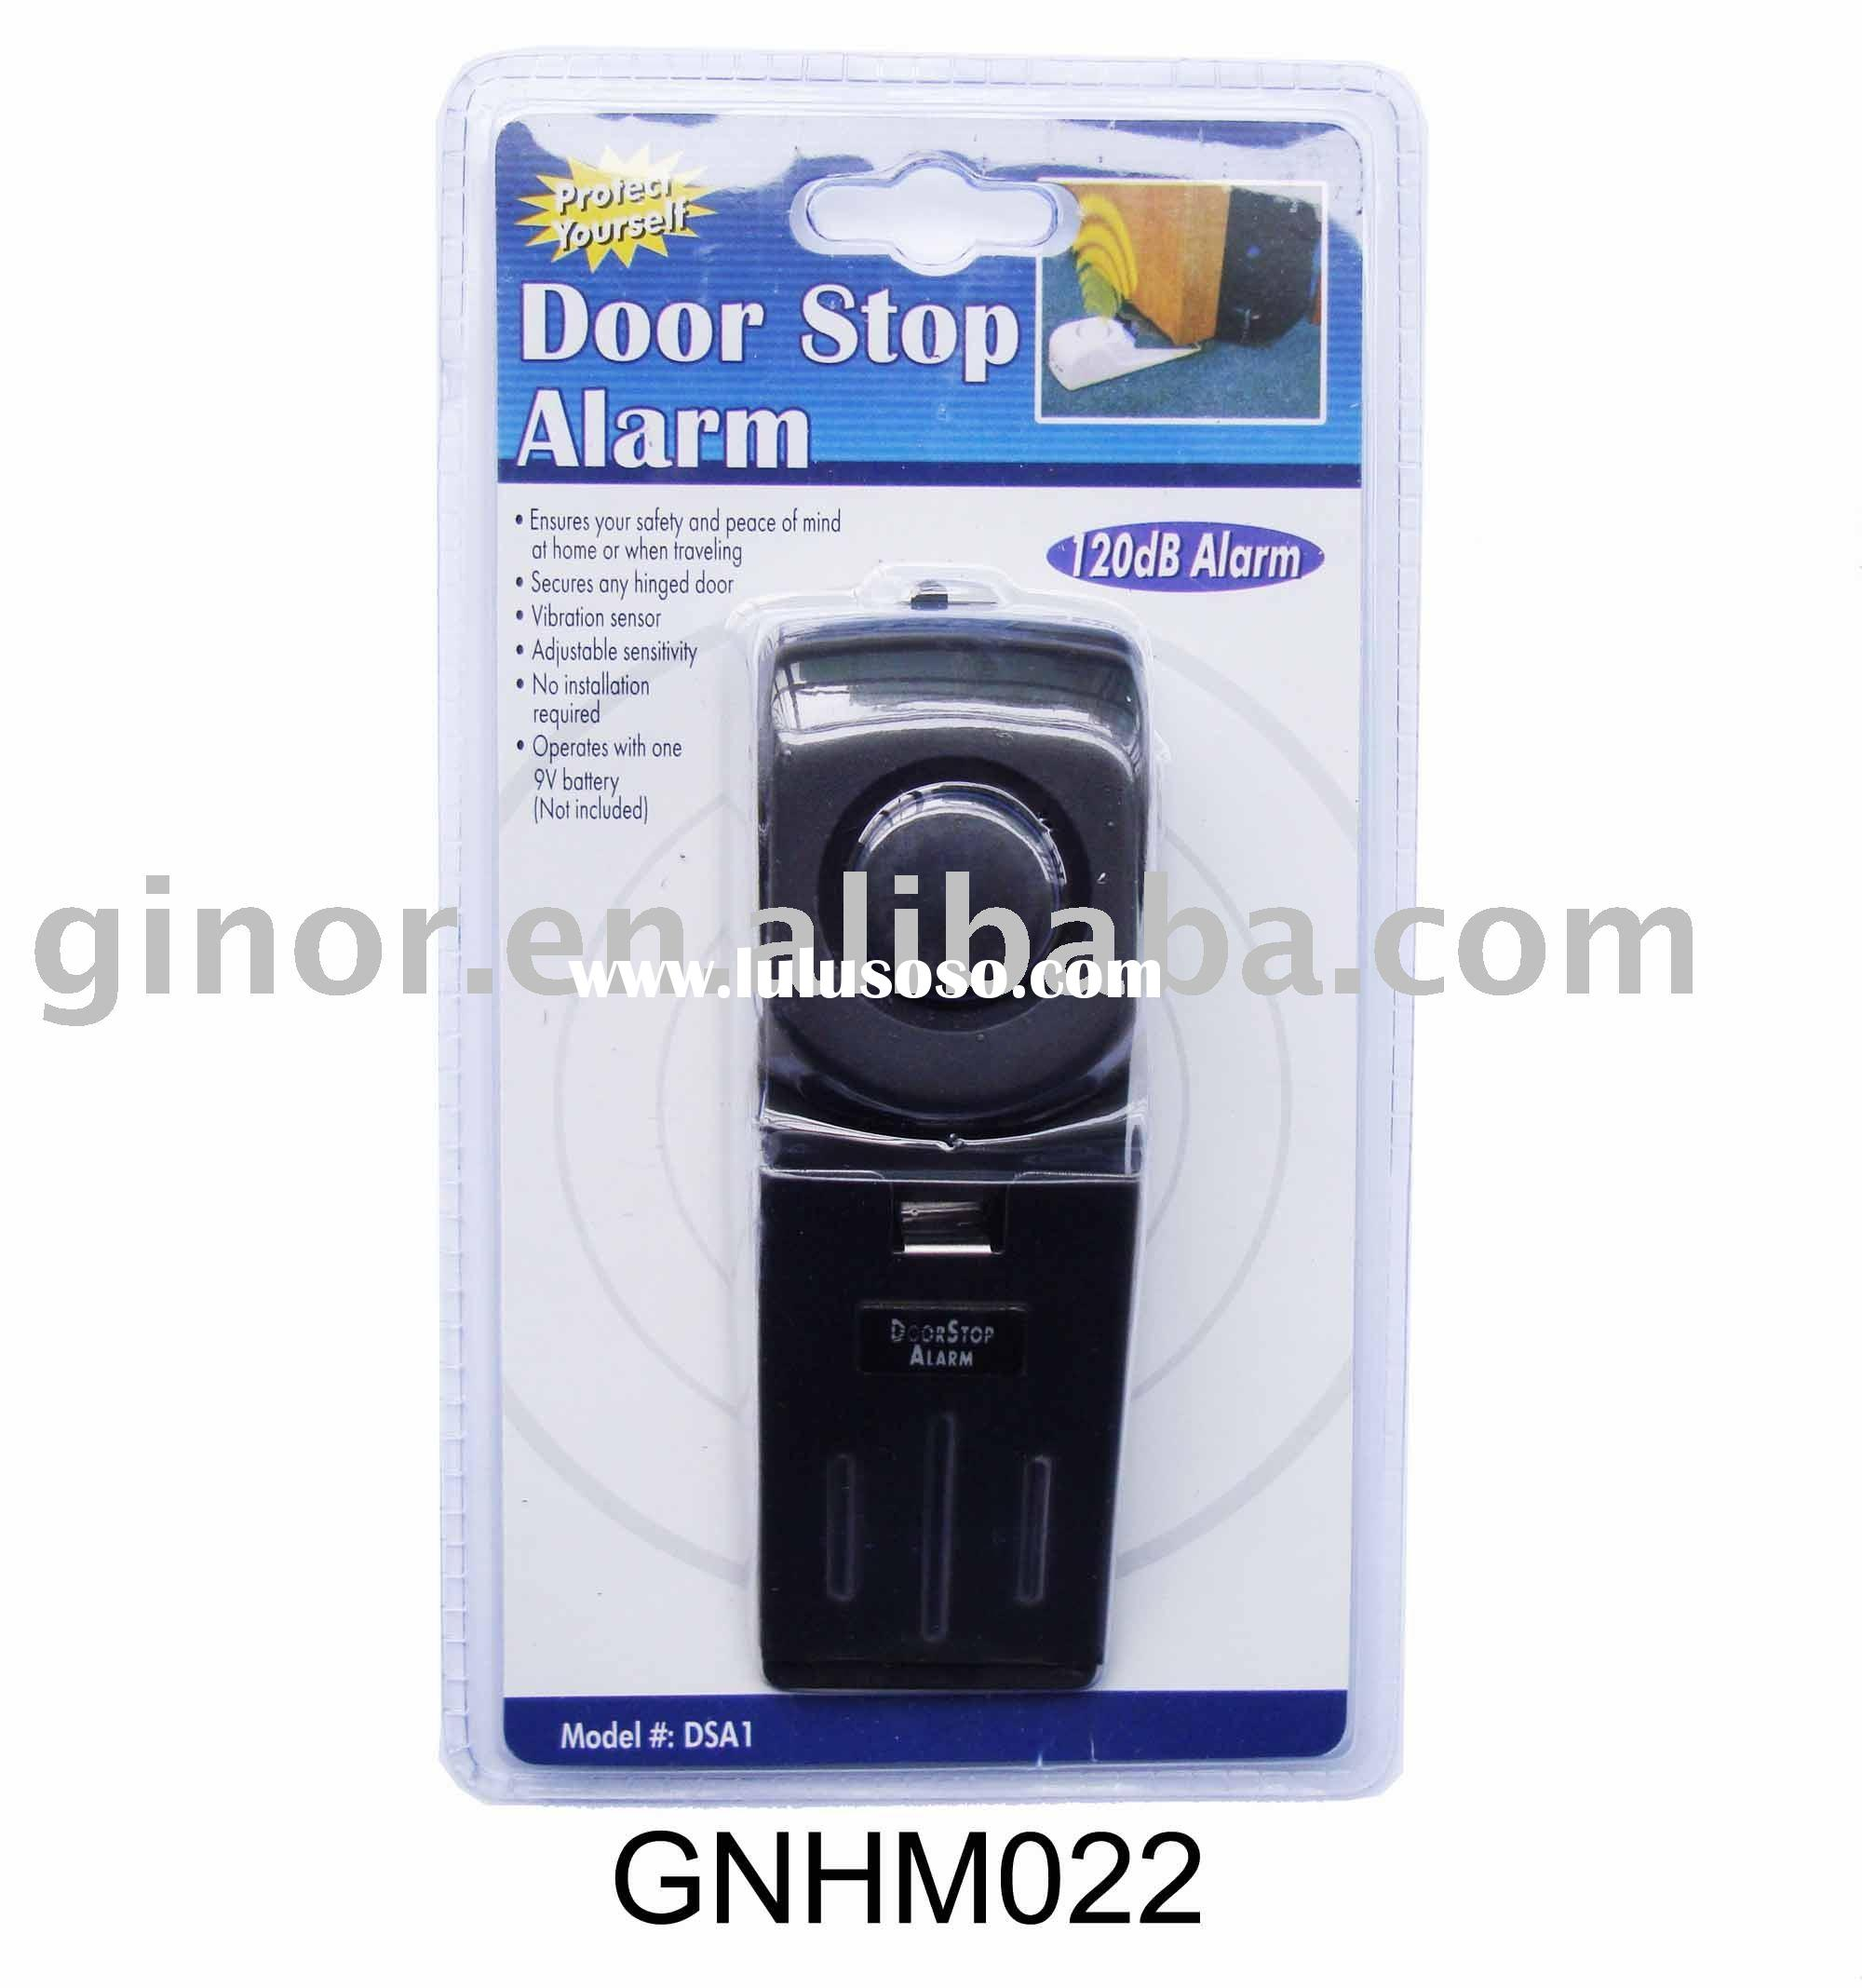 door alarm/security door alarm/door stopper alarm